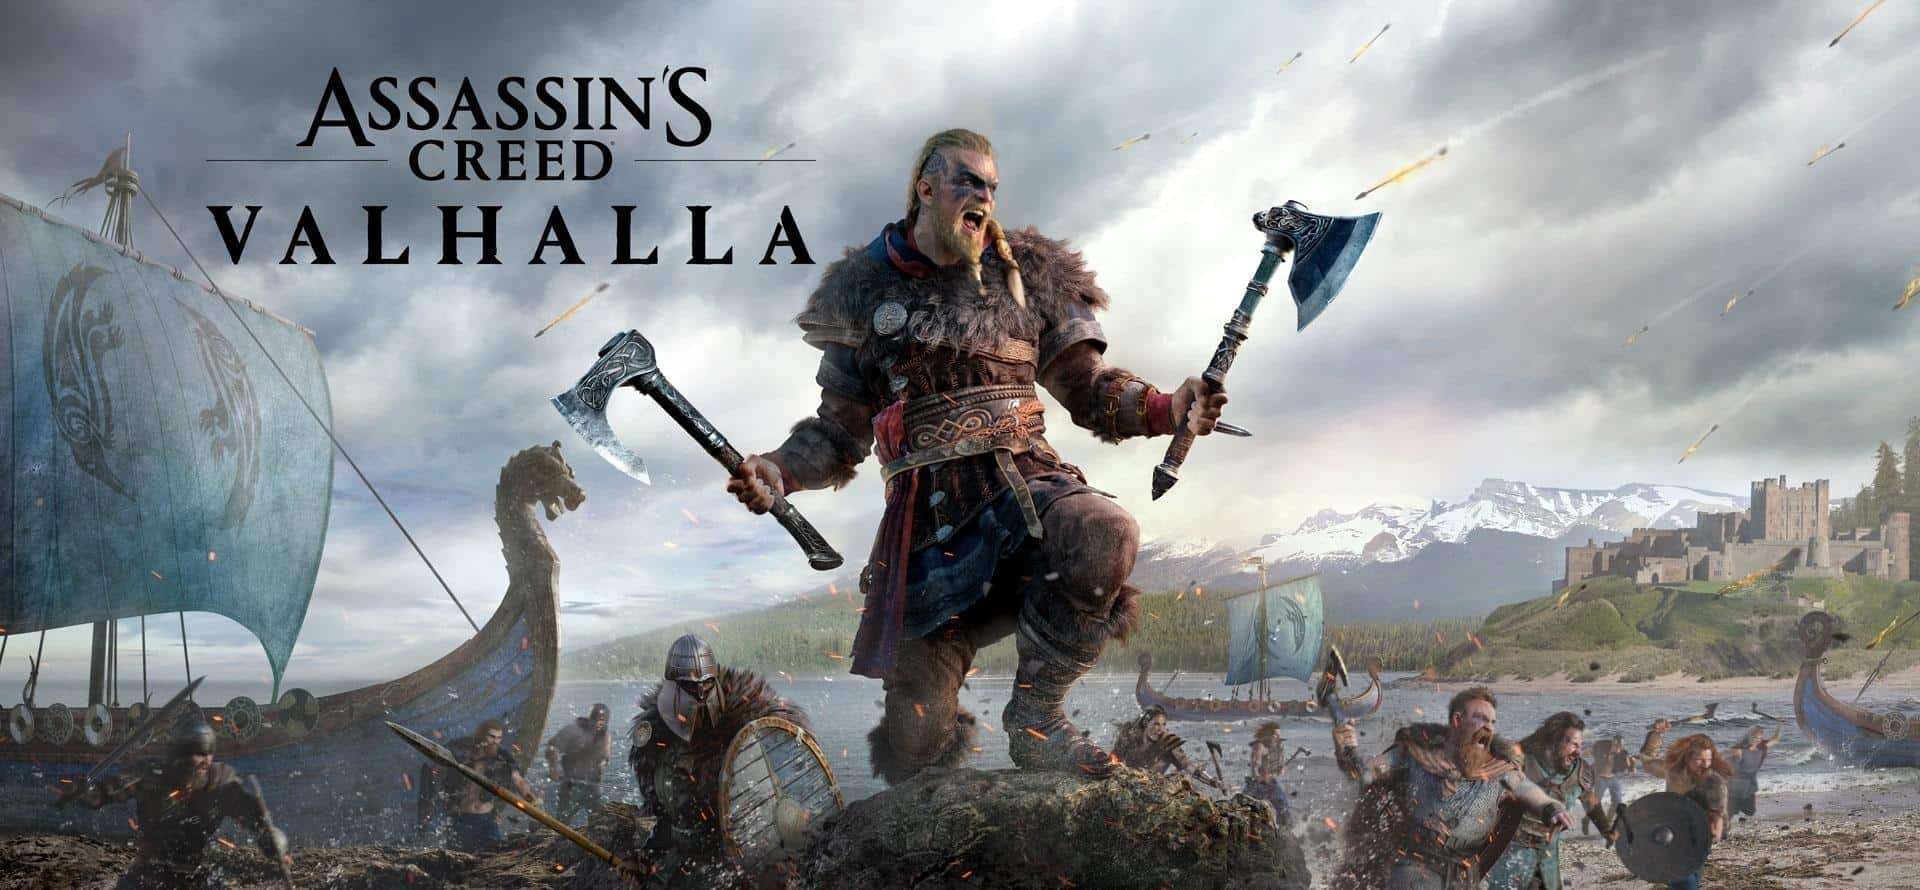 Looking forward to Assassins Creed Valhalla? The map will be huge!